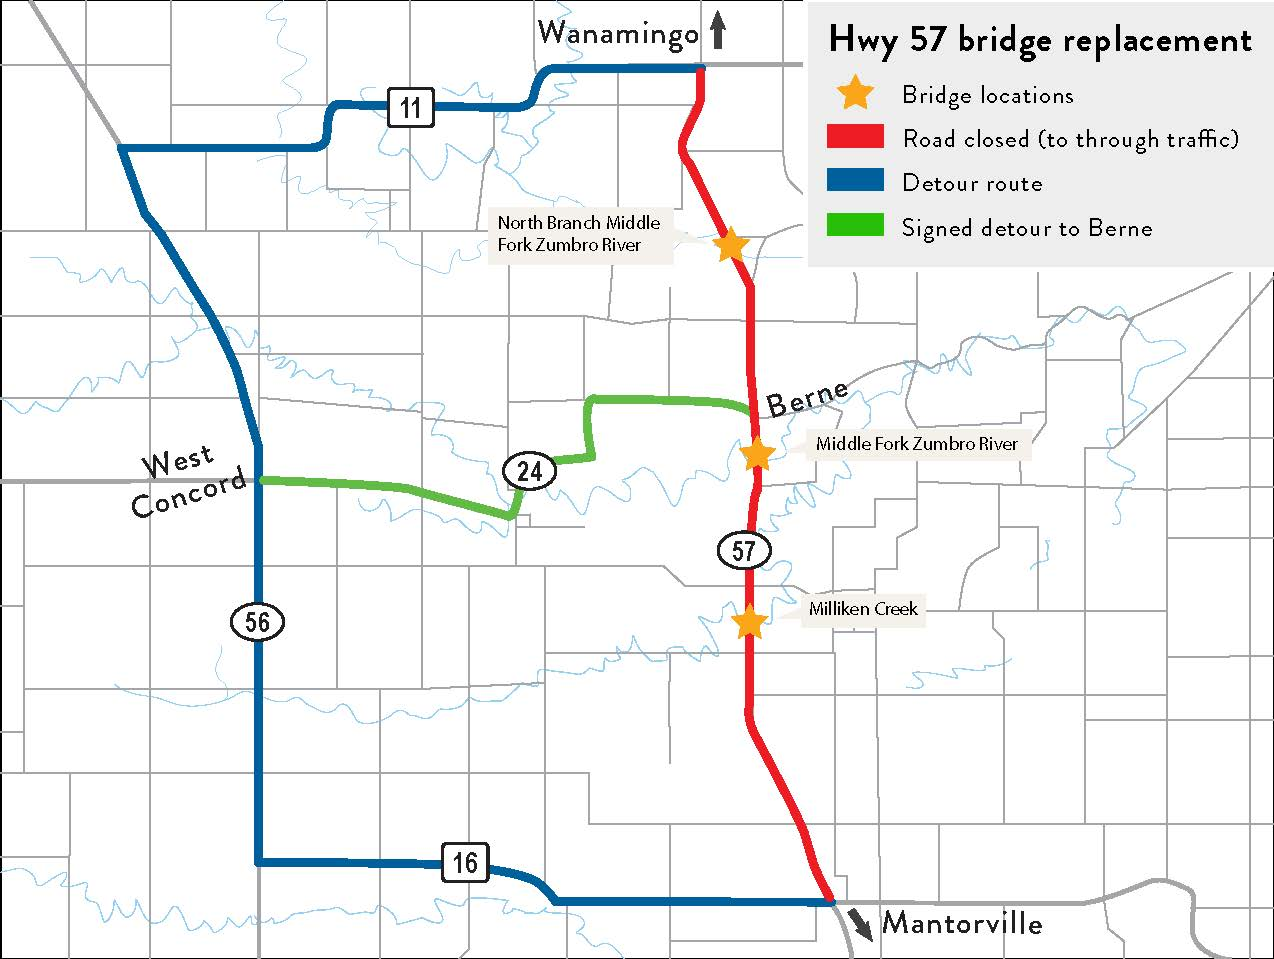 Hwy 57 Bridge Replacements